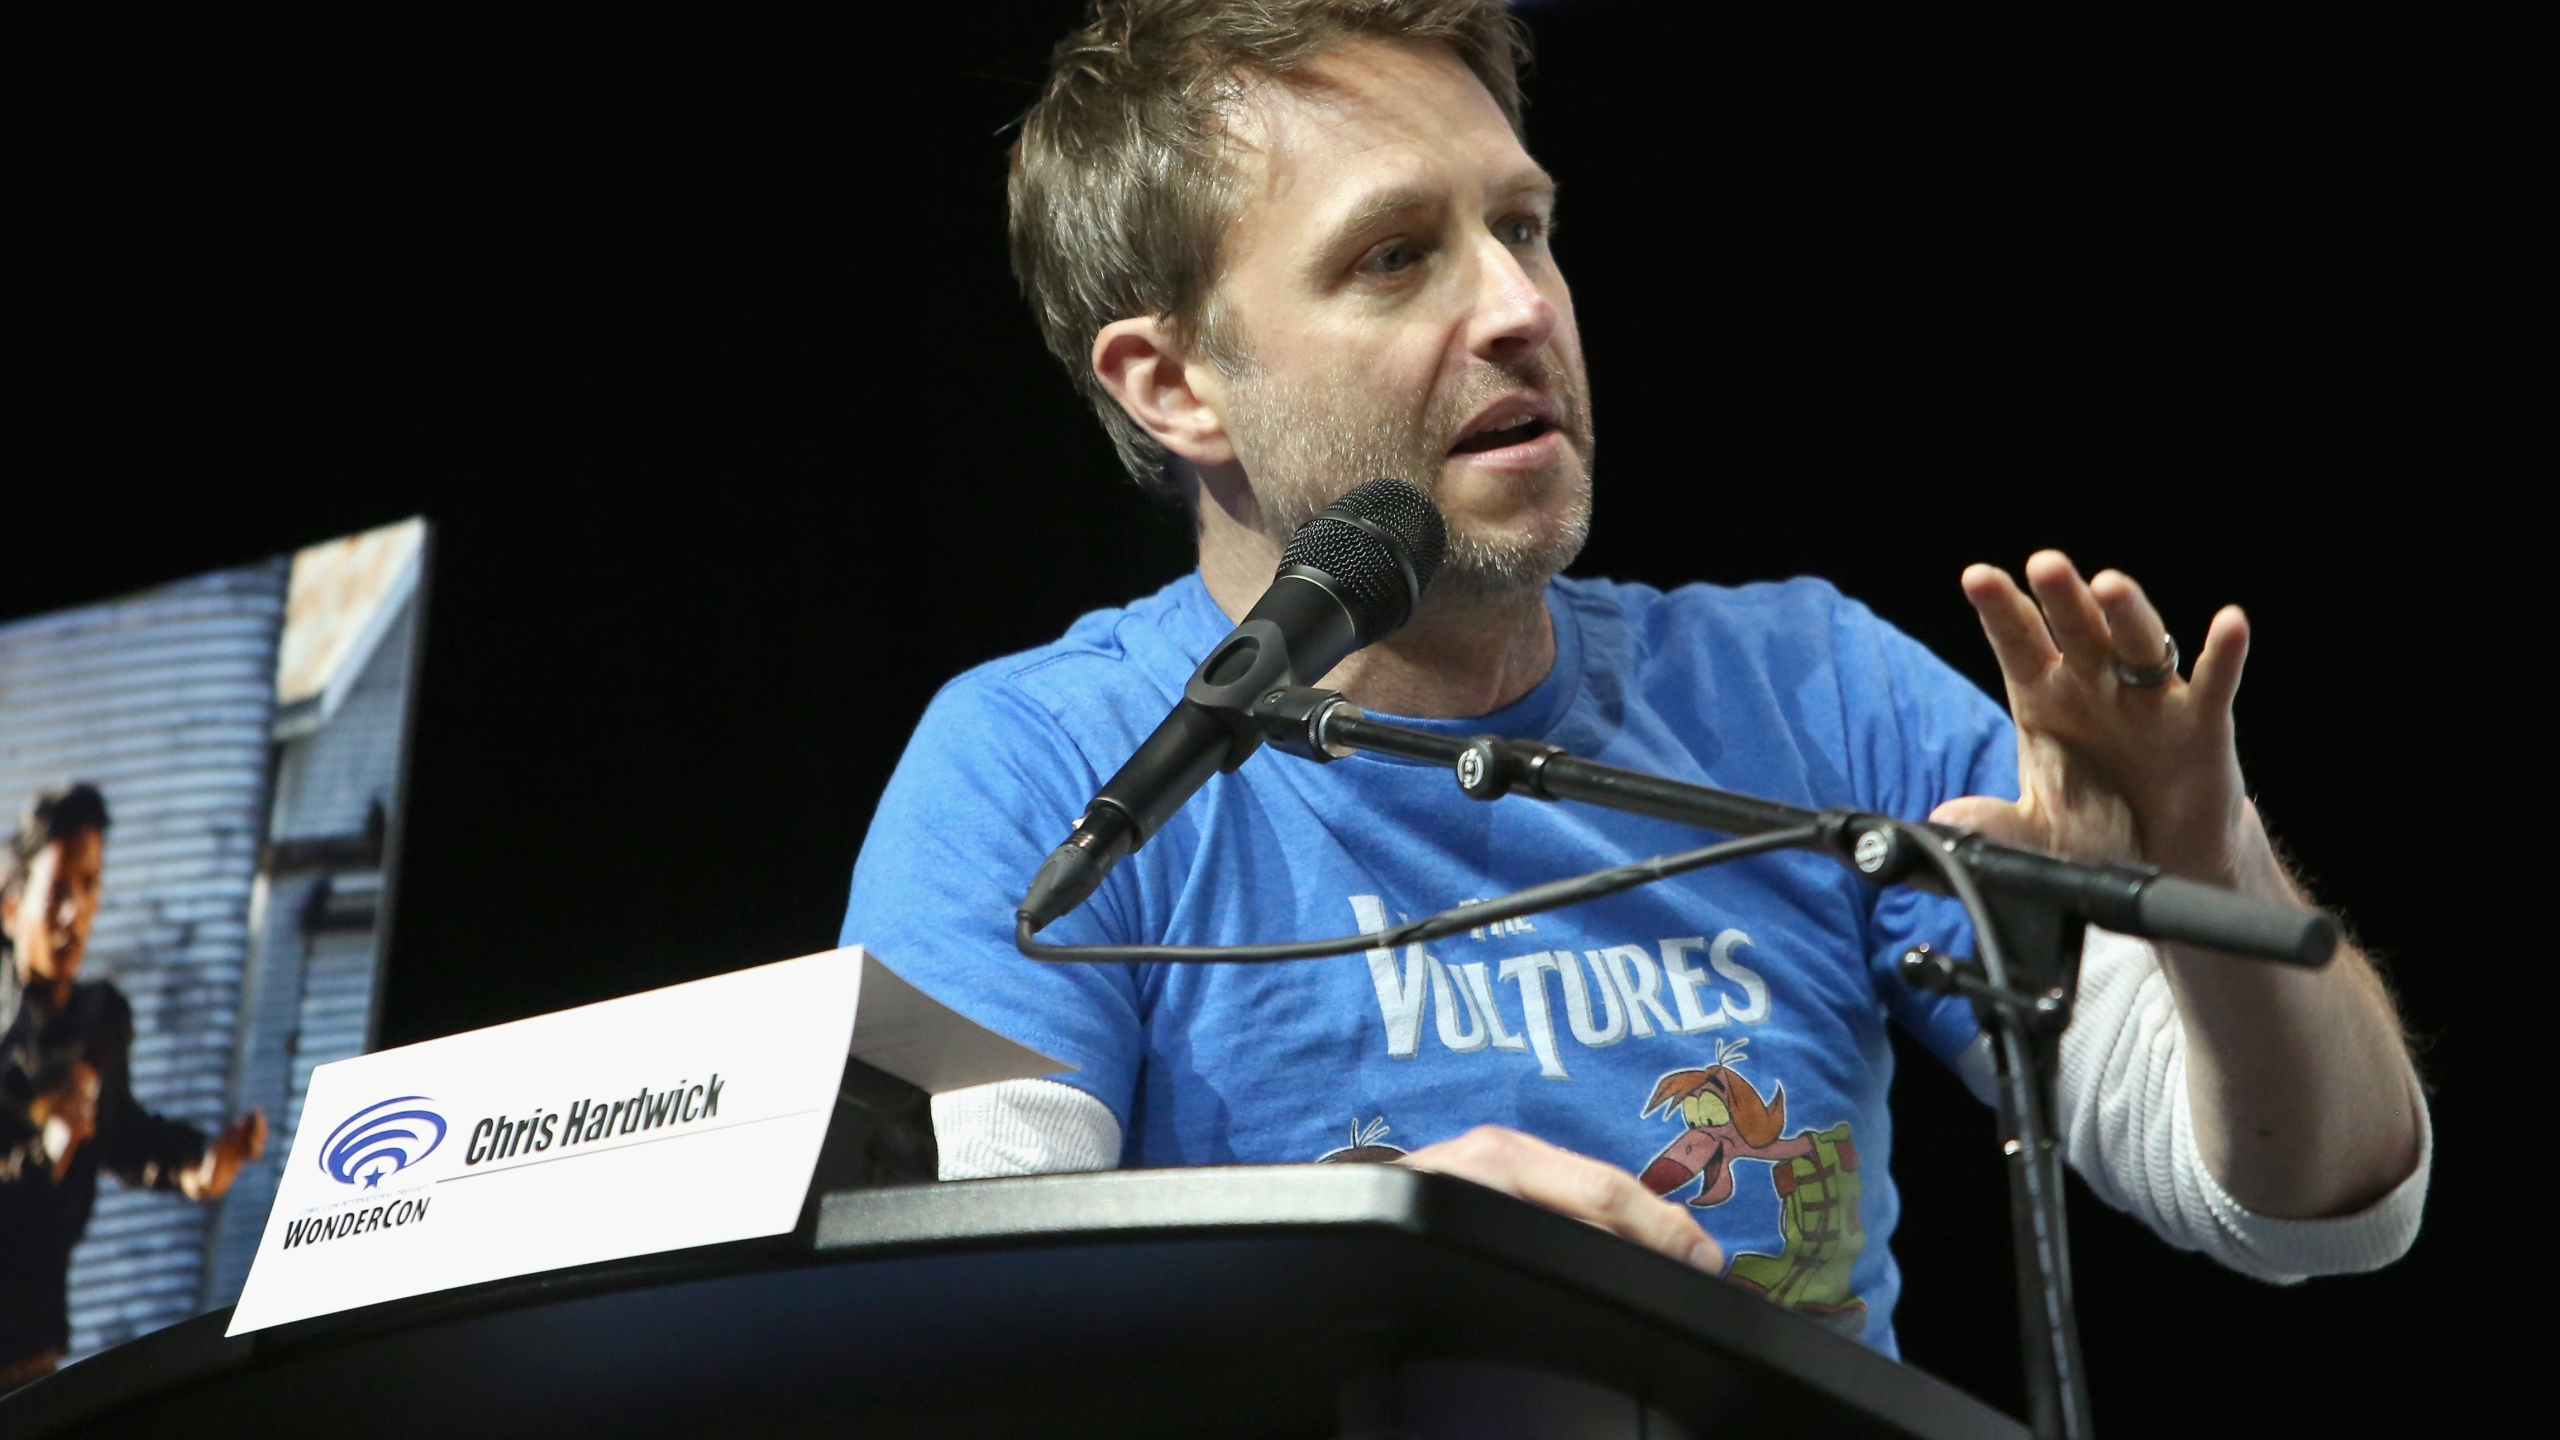 Moderator Chris Hardwick speaks onstage during AMC's 'Fear of the Walking Dead' panel at WonderCon at Anaheim Convention Center on March 24, 2018 in Anaheim, California. (Credit: Jesse Grant/Getty Images for AMC)